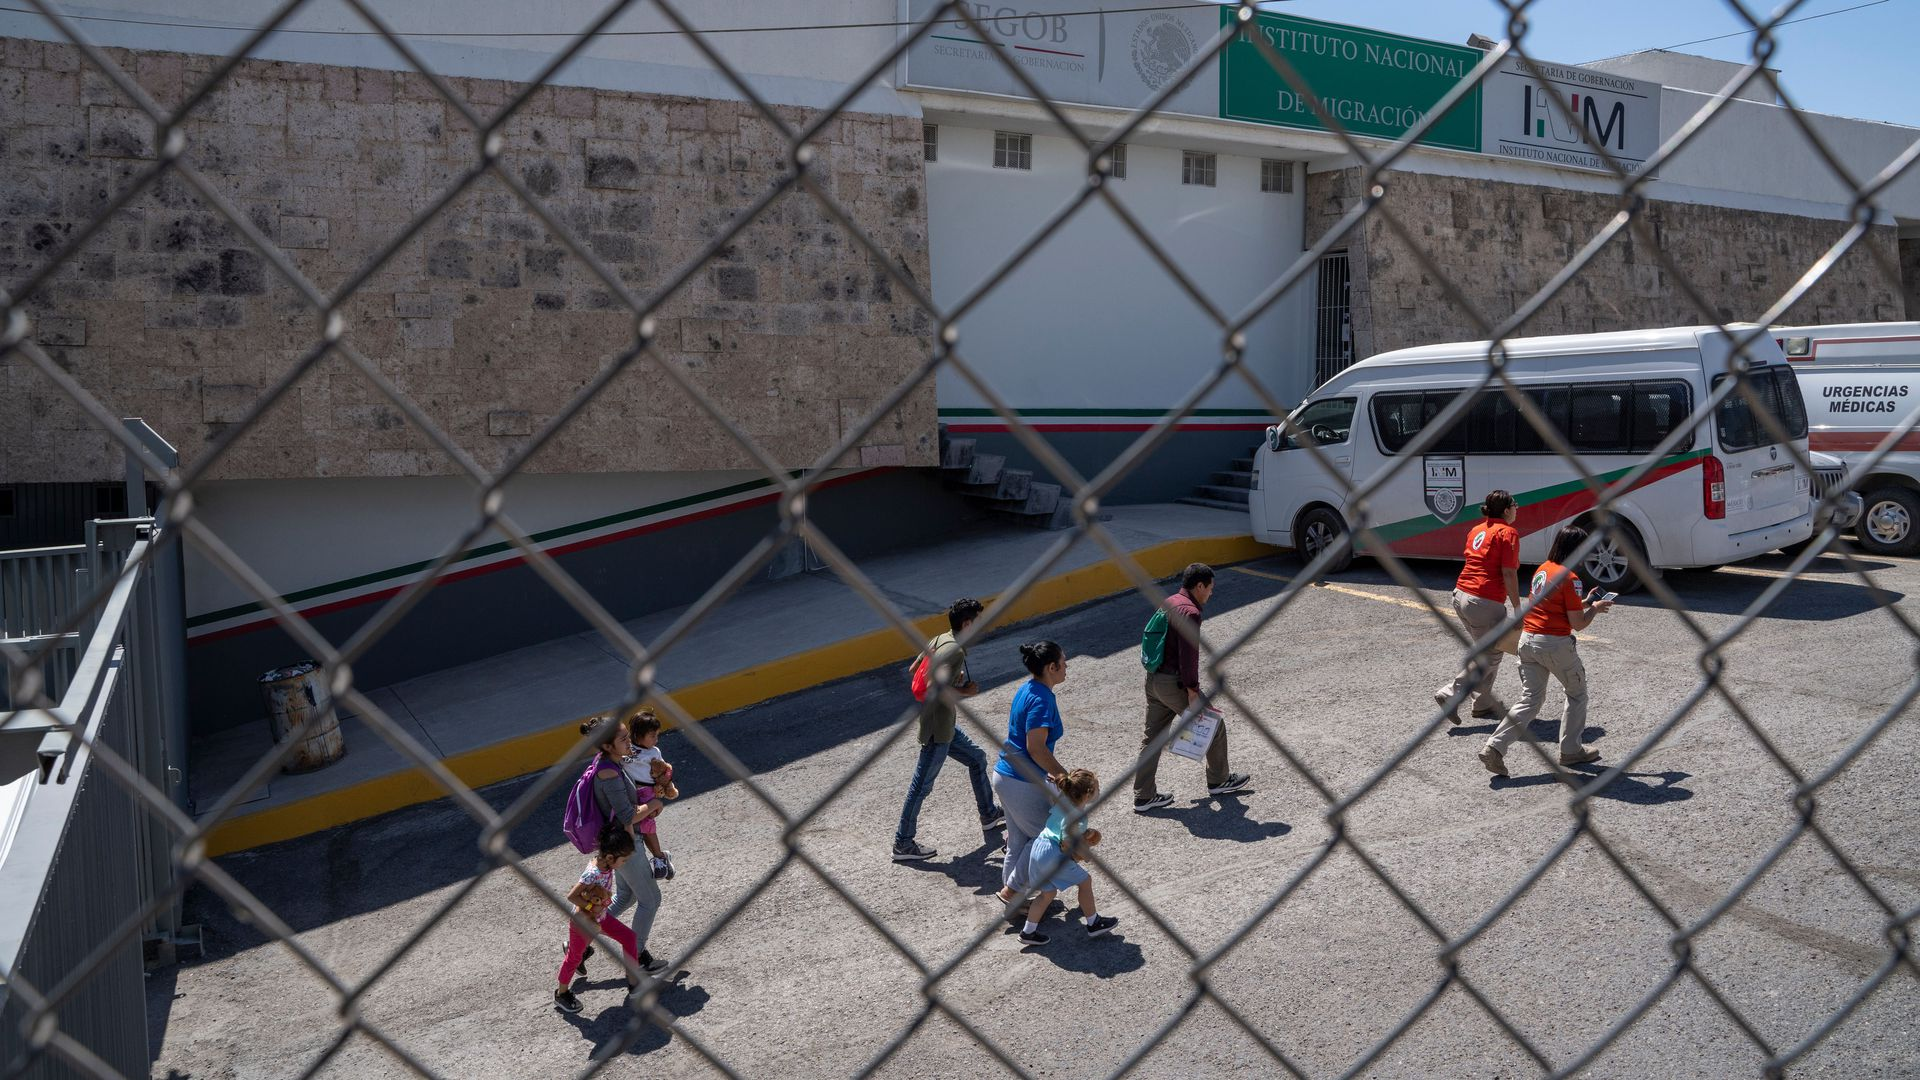 Migrants are led out of the National Institue of Migration in downtown Ciudad Juarez, Mexico. Seen through a chain link fence.